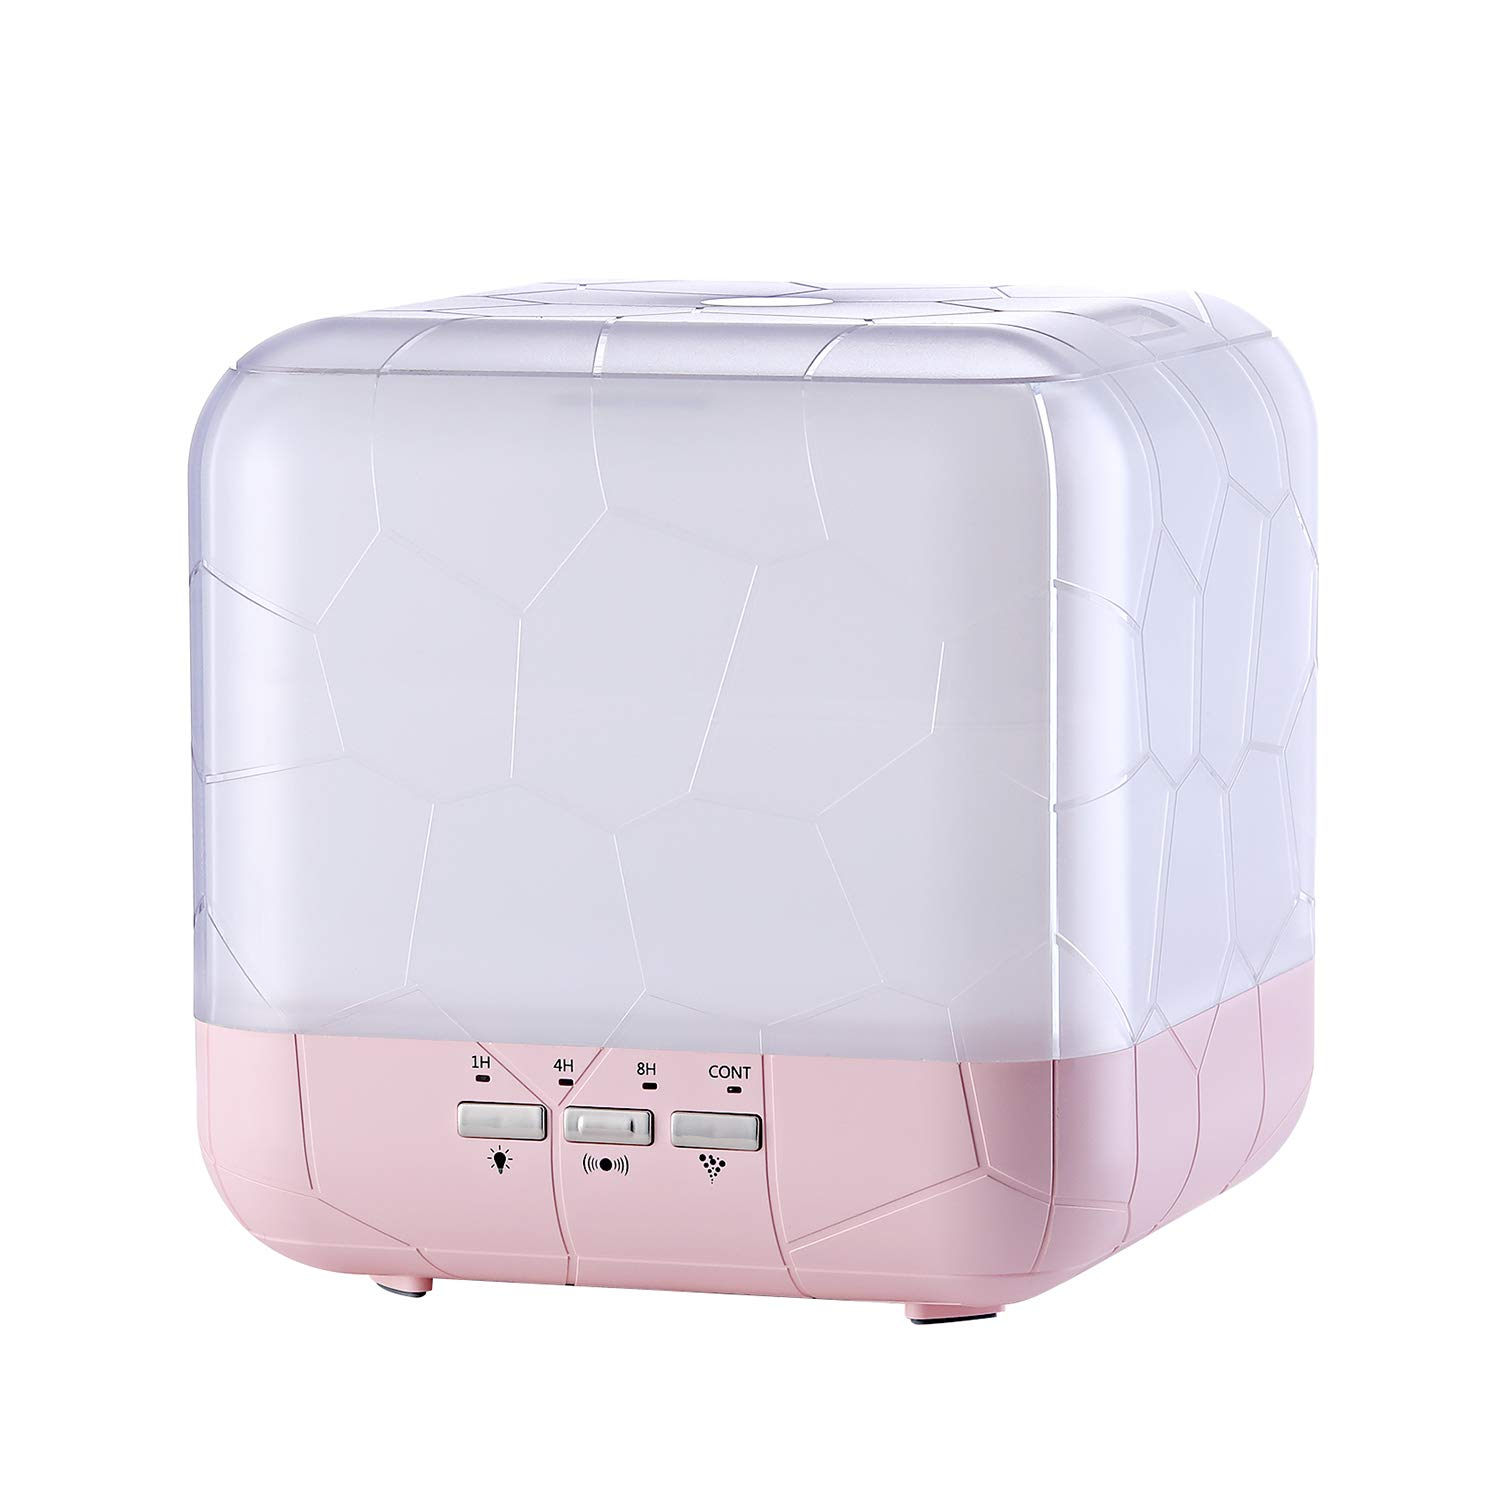 Natural Humidifier Ionizer HEPA Filter Free Air Purifier Water Based Airwasher for Office Home Bedroom Baby Room Study b.m.c MCB Essential Oil Diffuser